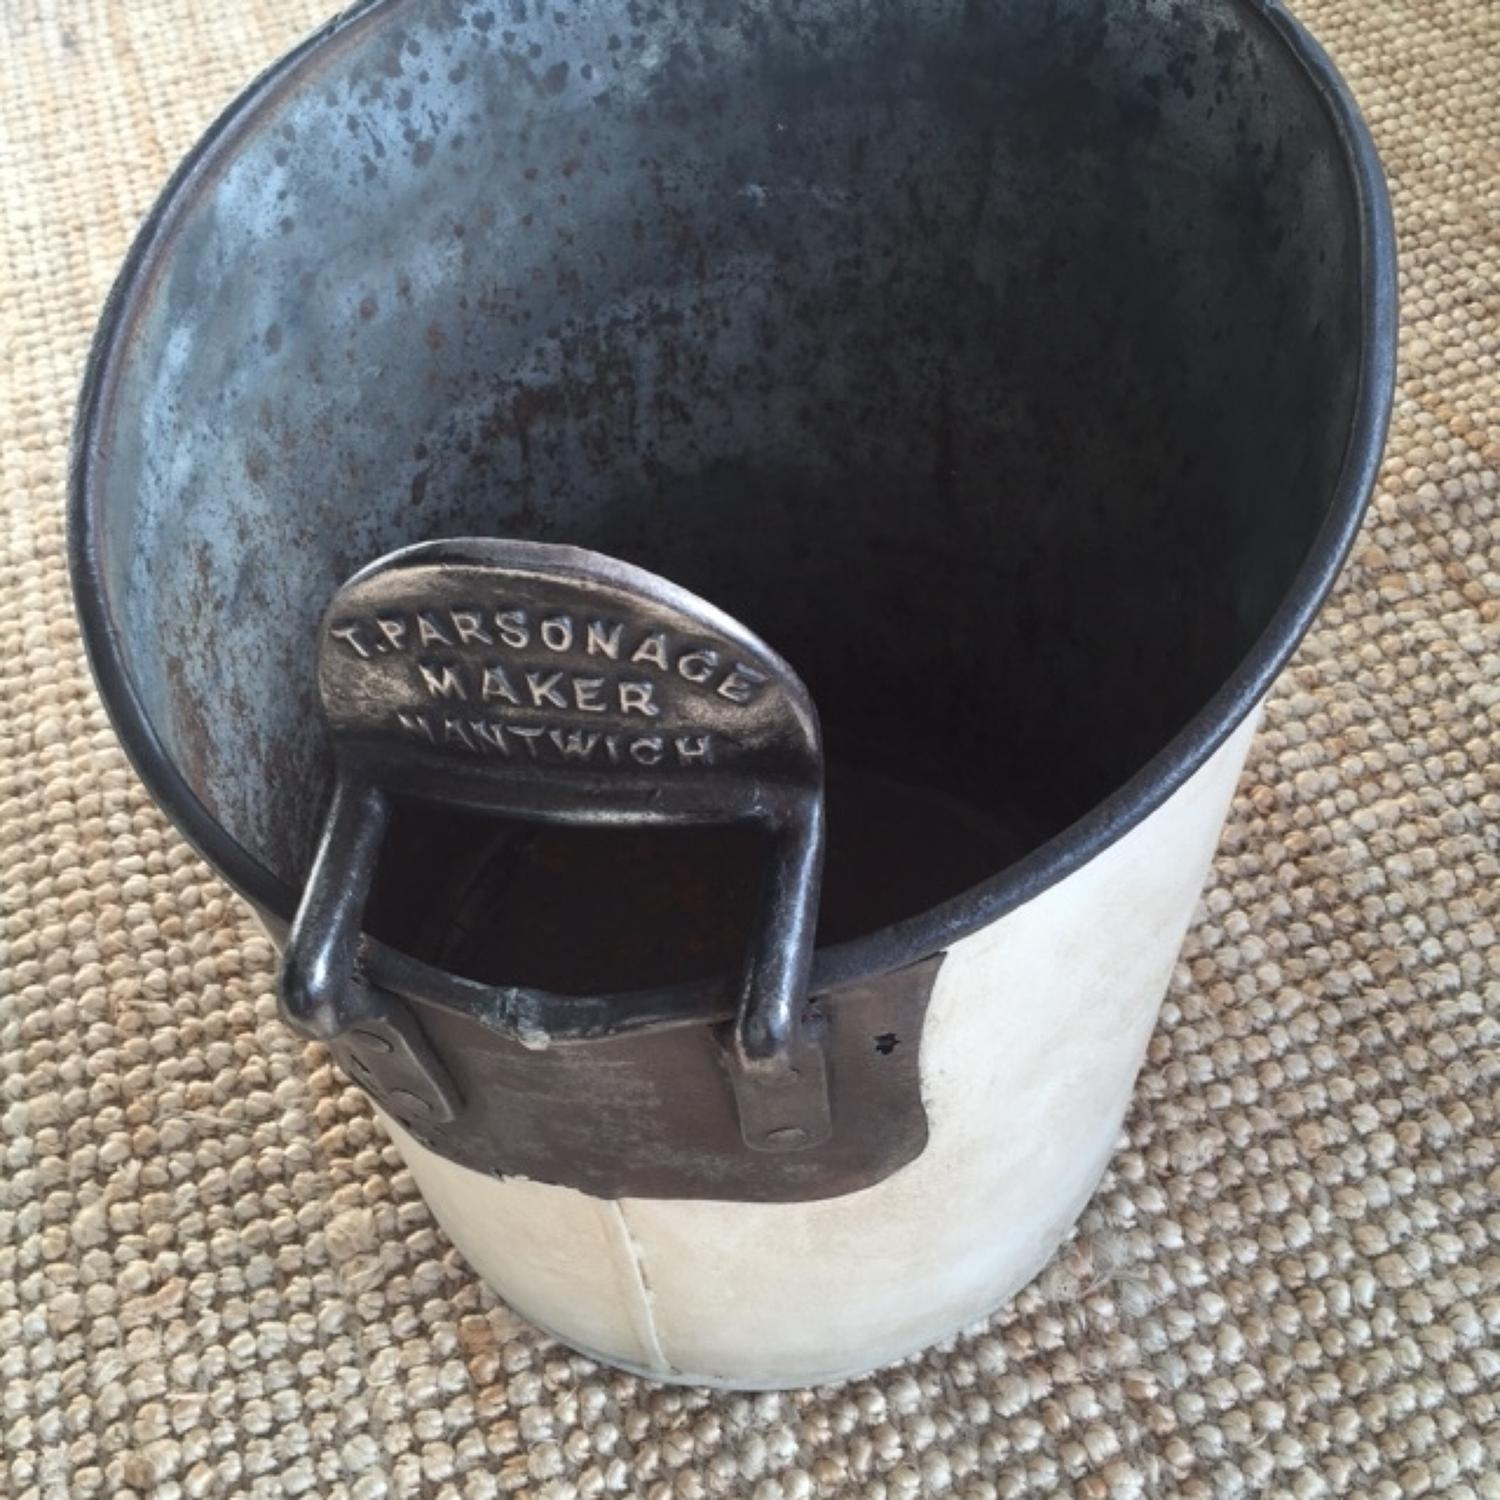 T Parsonage Milking Pail